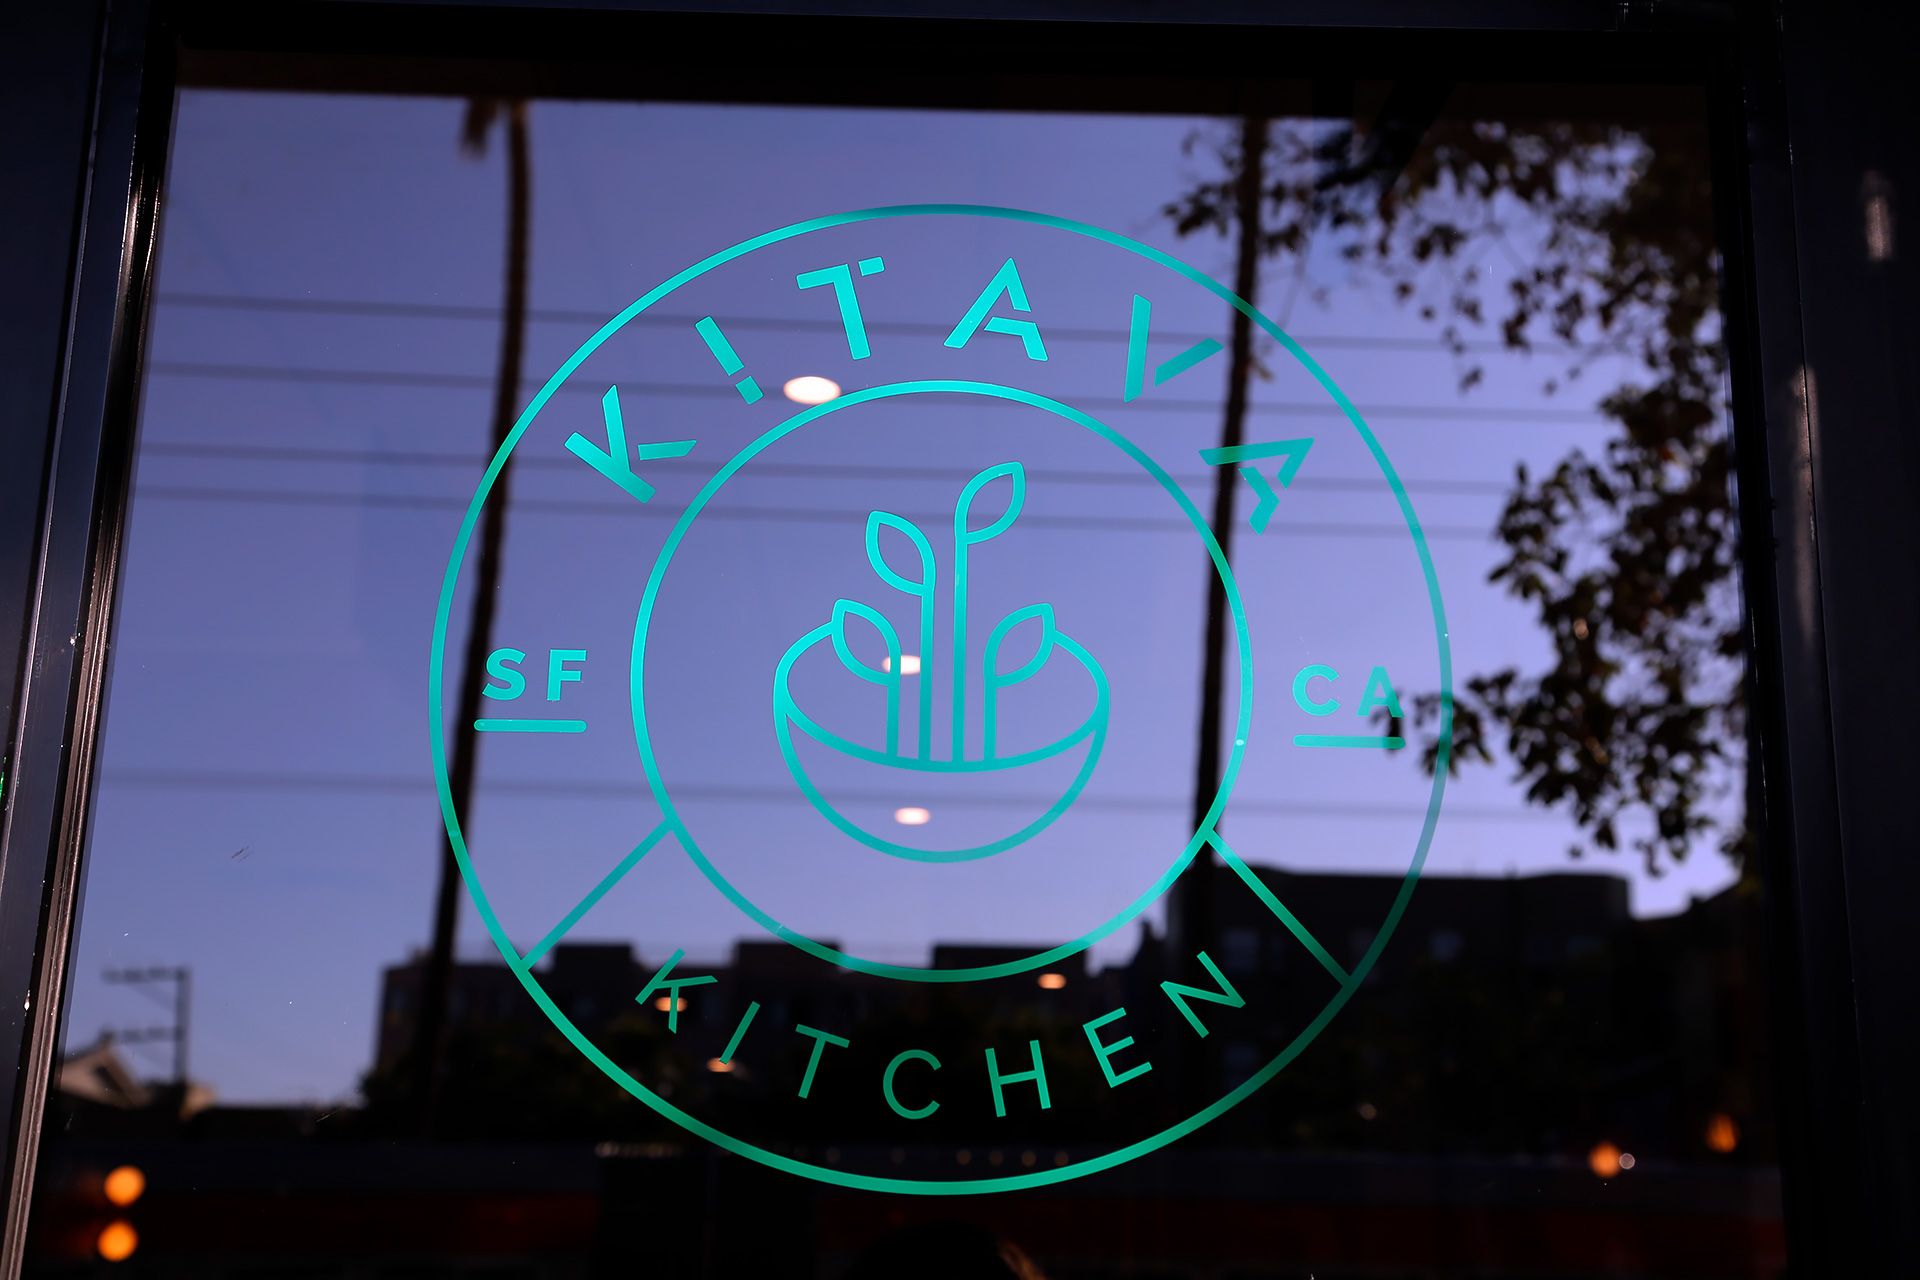 Kitava Kitchen logo on the doorway at Mission and 16th.